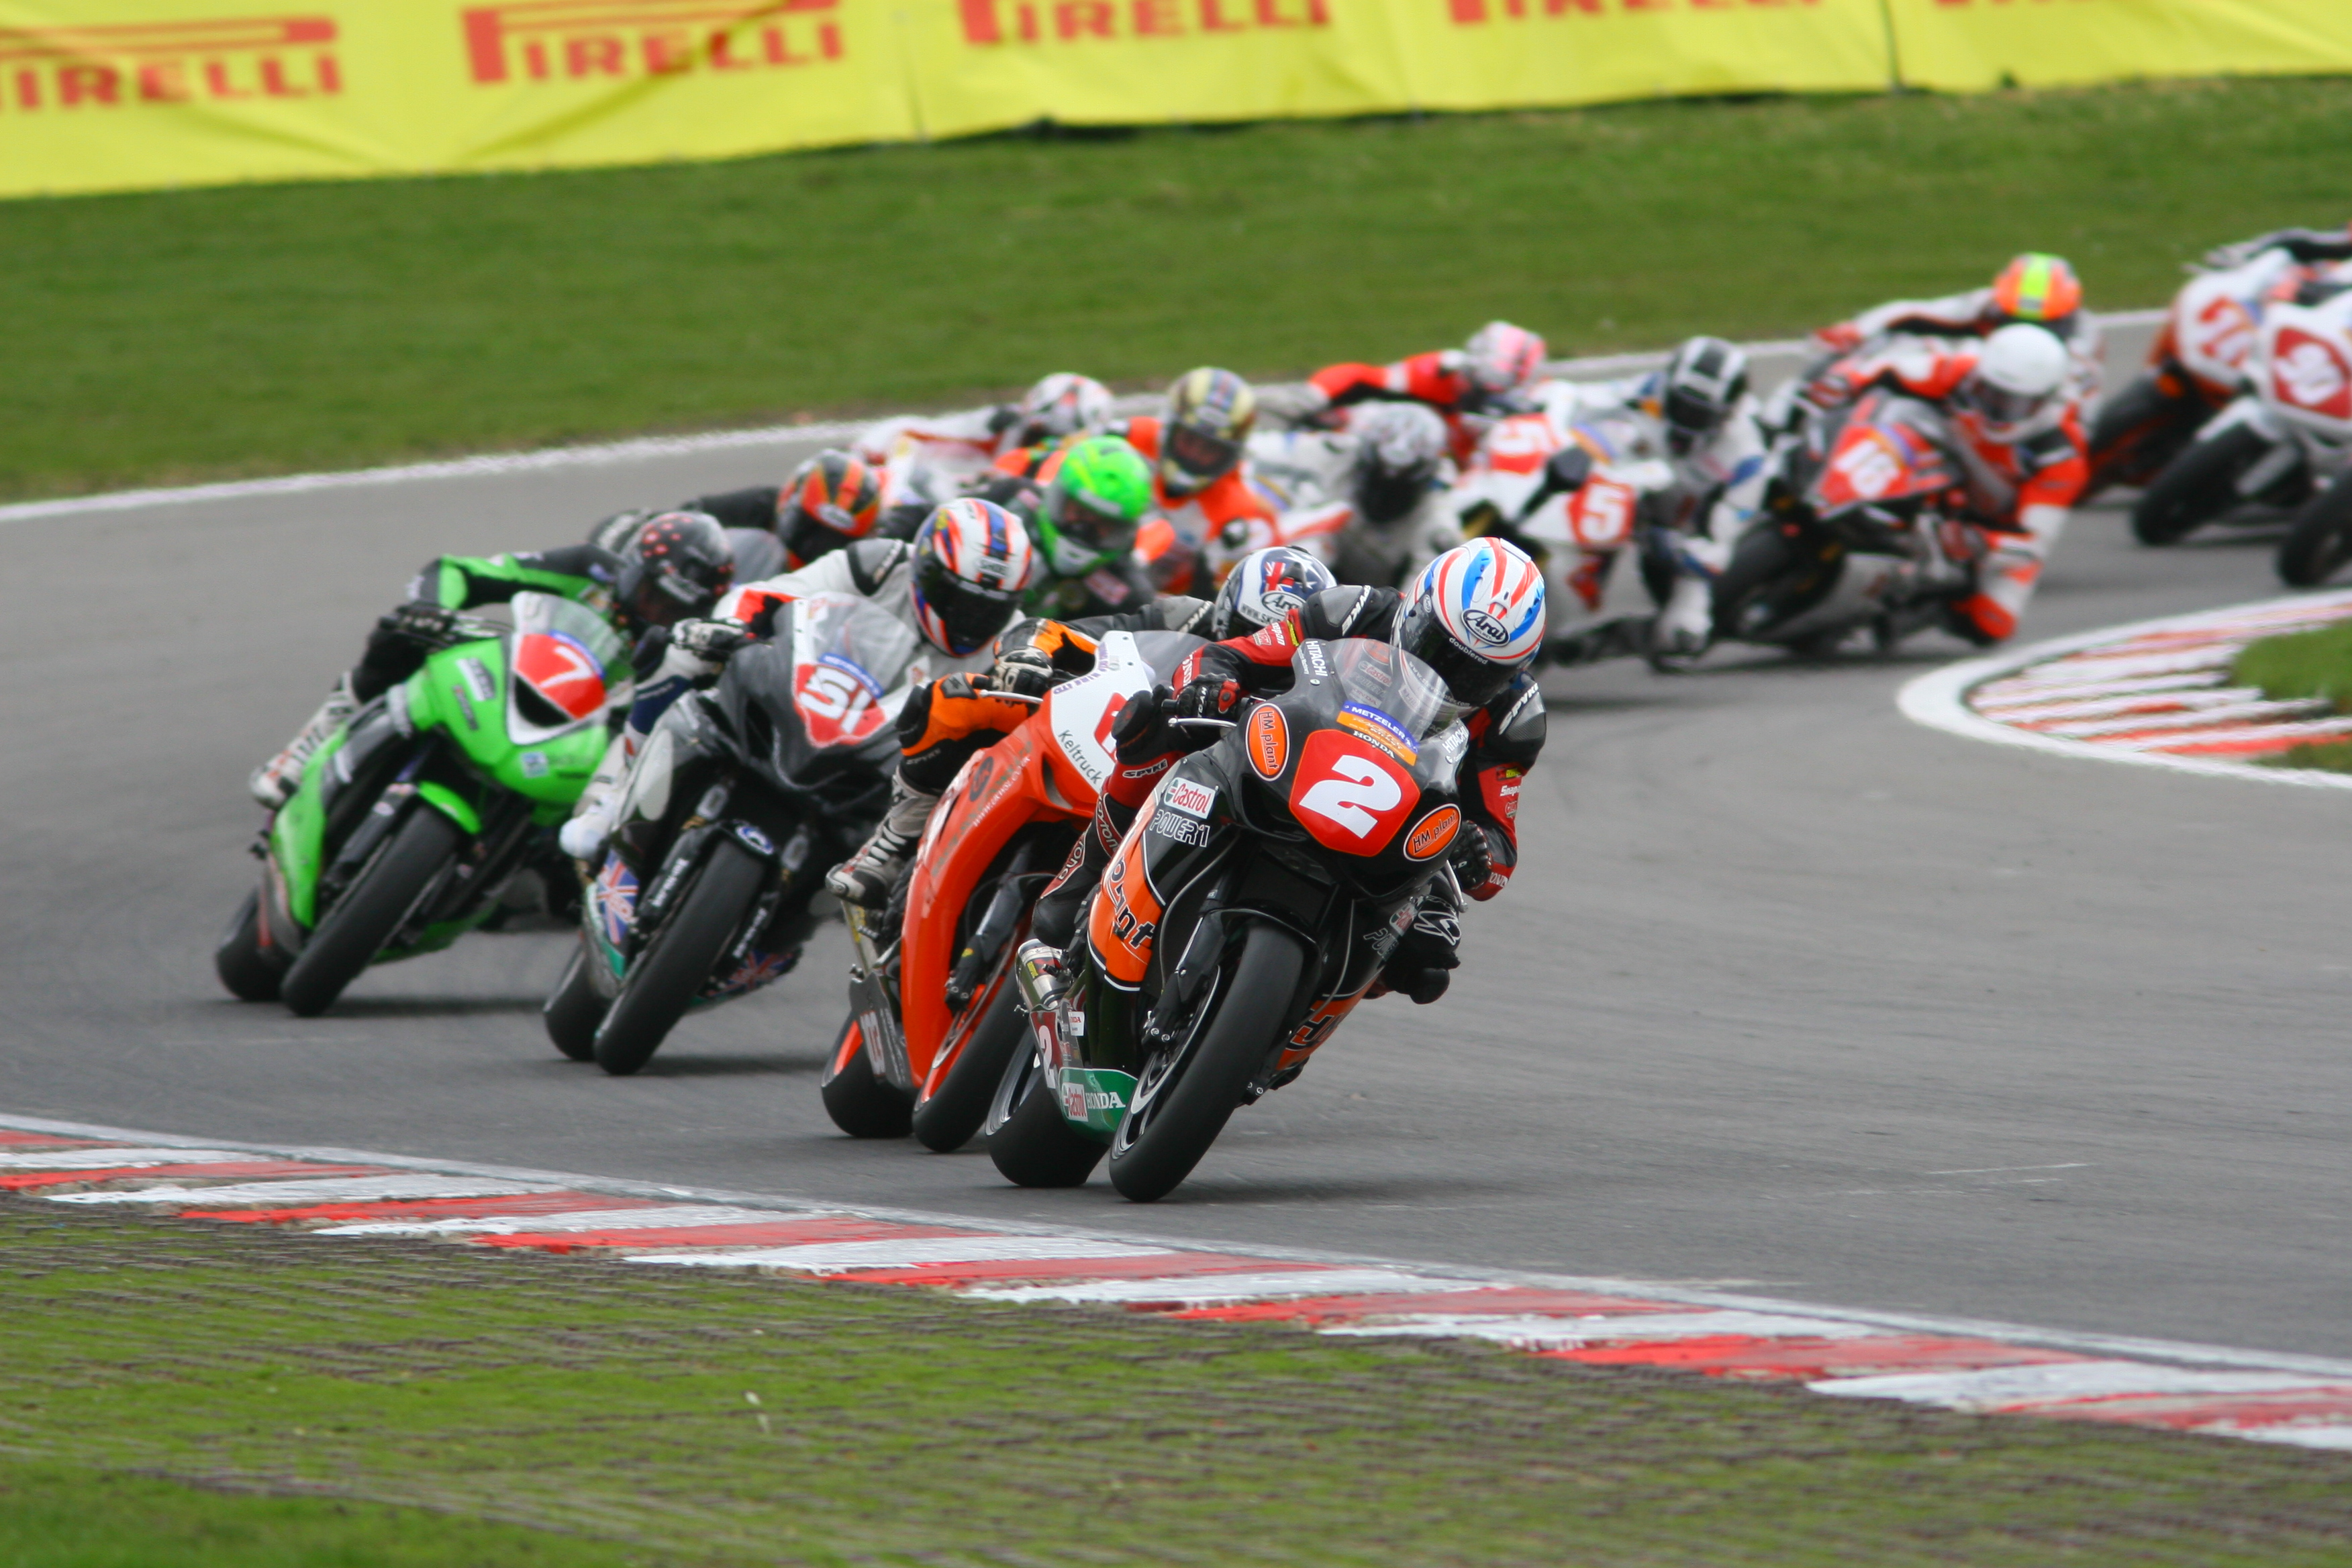 2010 National Superstock 1000